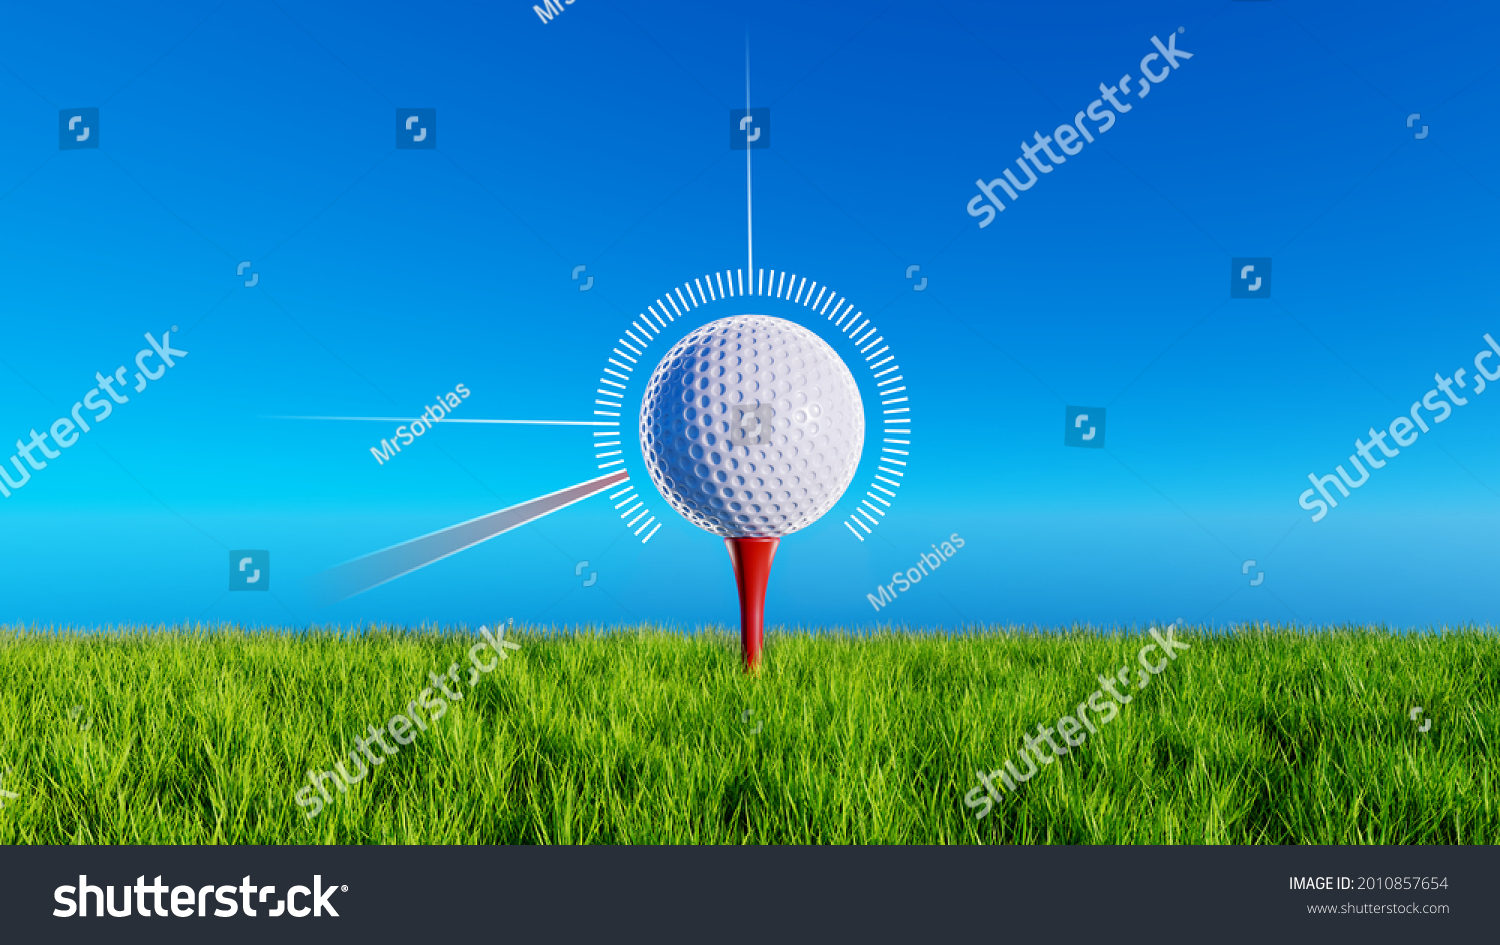 stock-photo-golf-ball-on-a-red-tee-in-gr